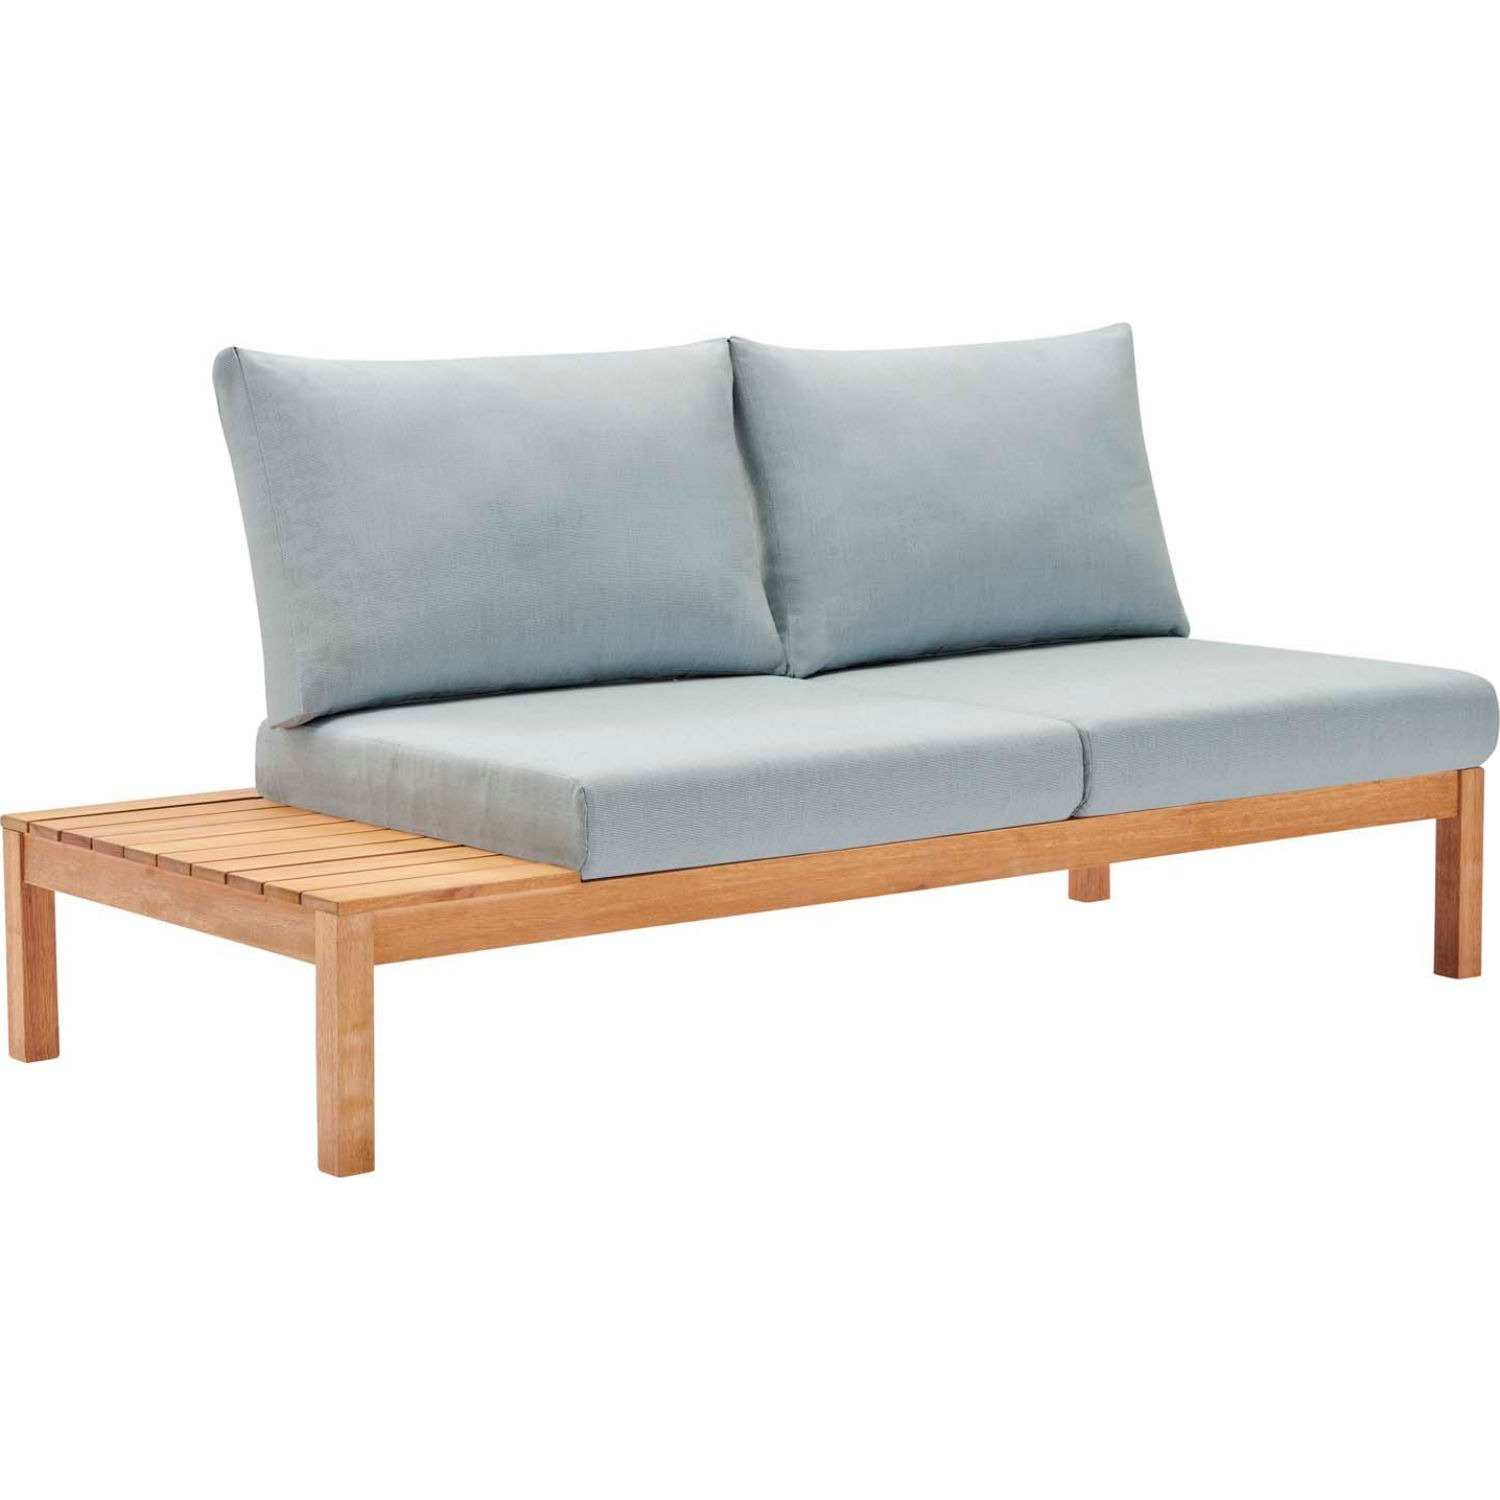 3-Piece Outdoor Sectional In Natural Light Blue - image-1